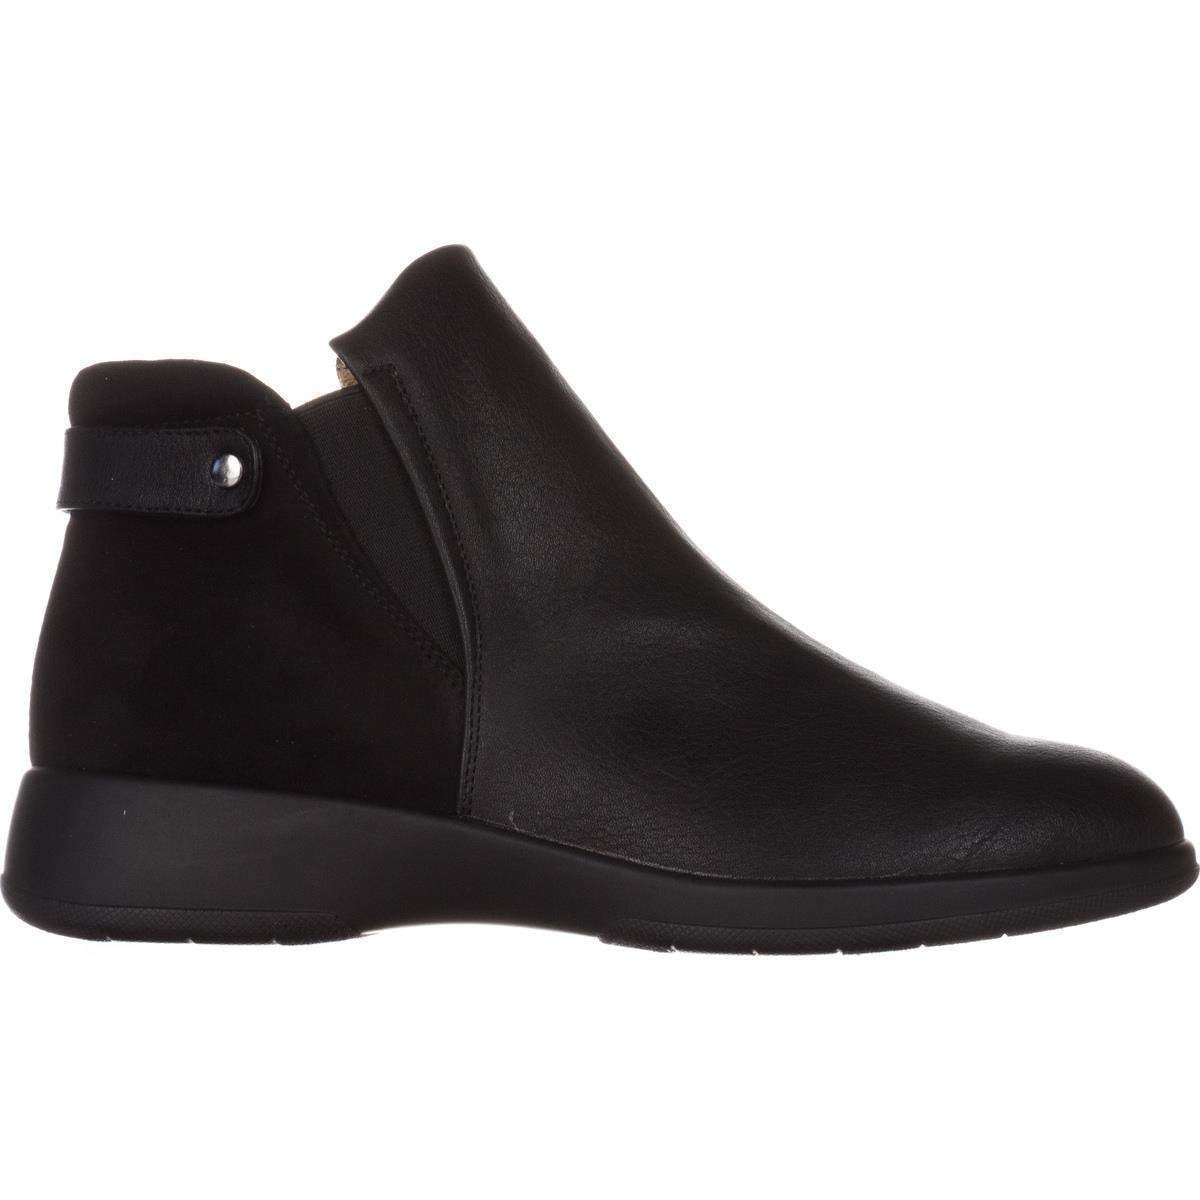 41a009f5034b7 Naturalizer Womens Barita Round Toe Ankle Chelsea Boots | eBay